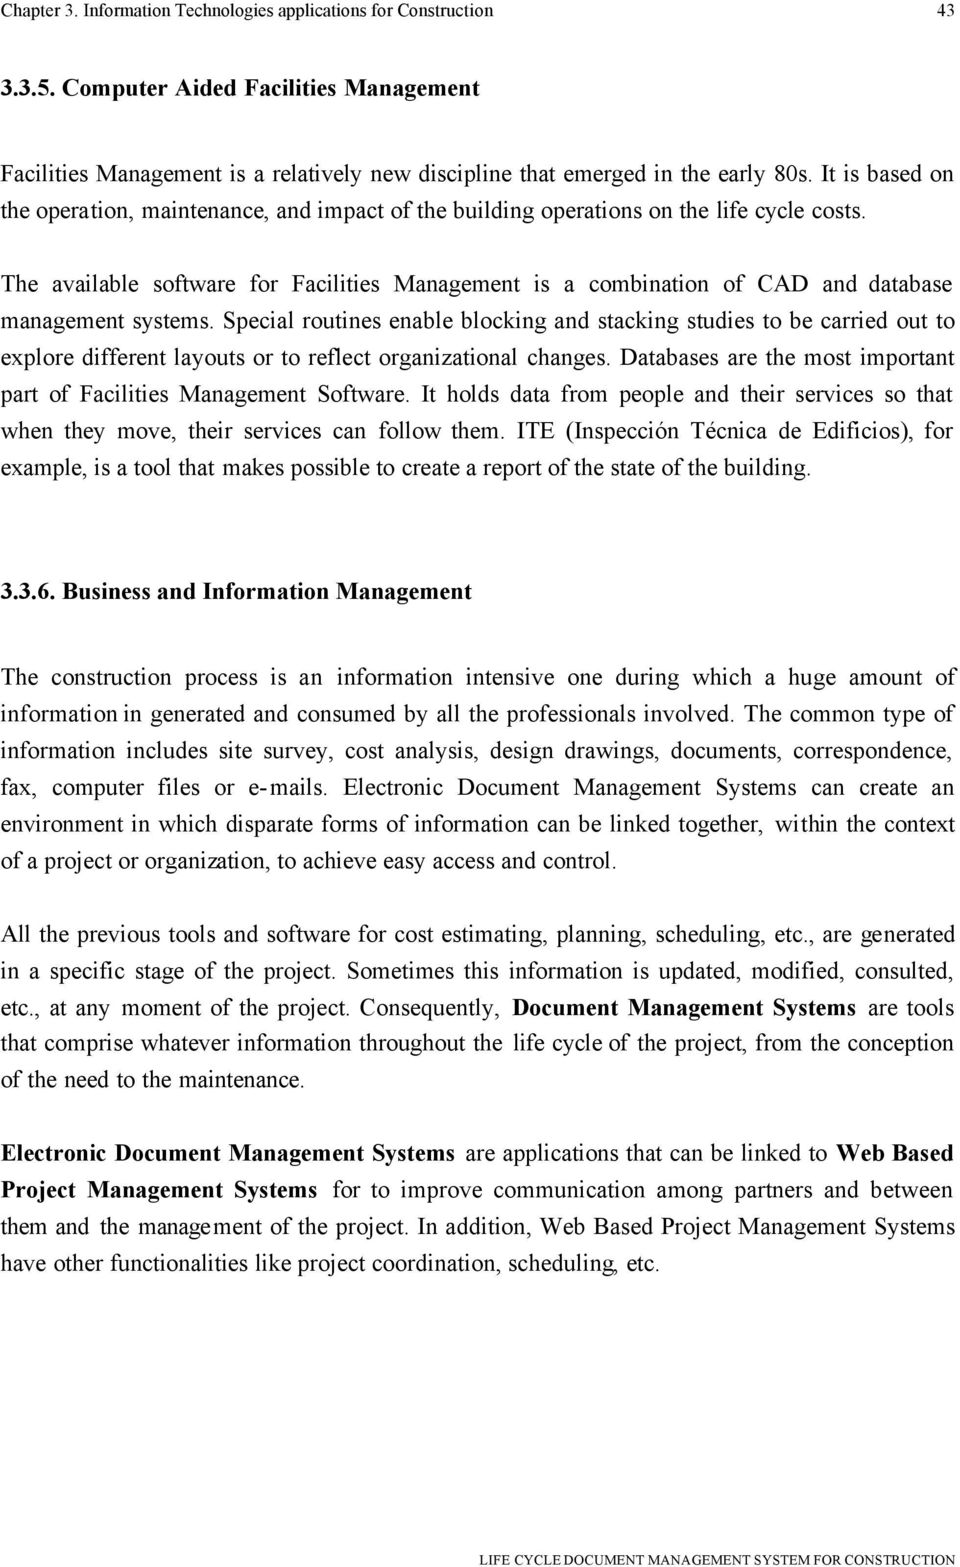 3  Information Technologies applications for Construction - PDF